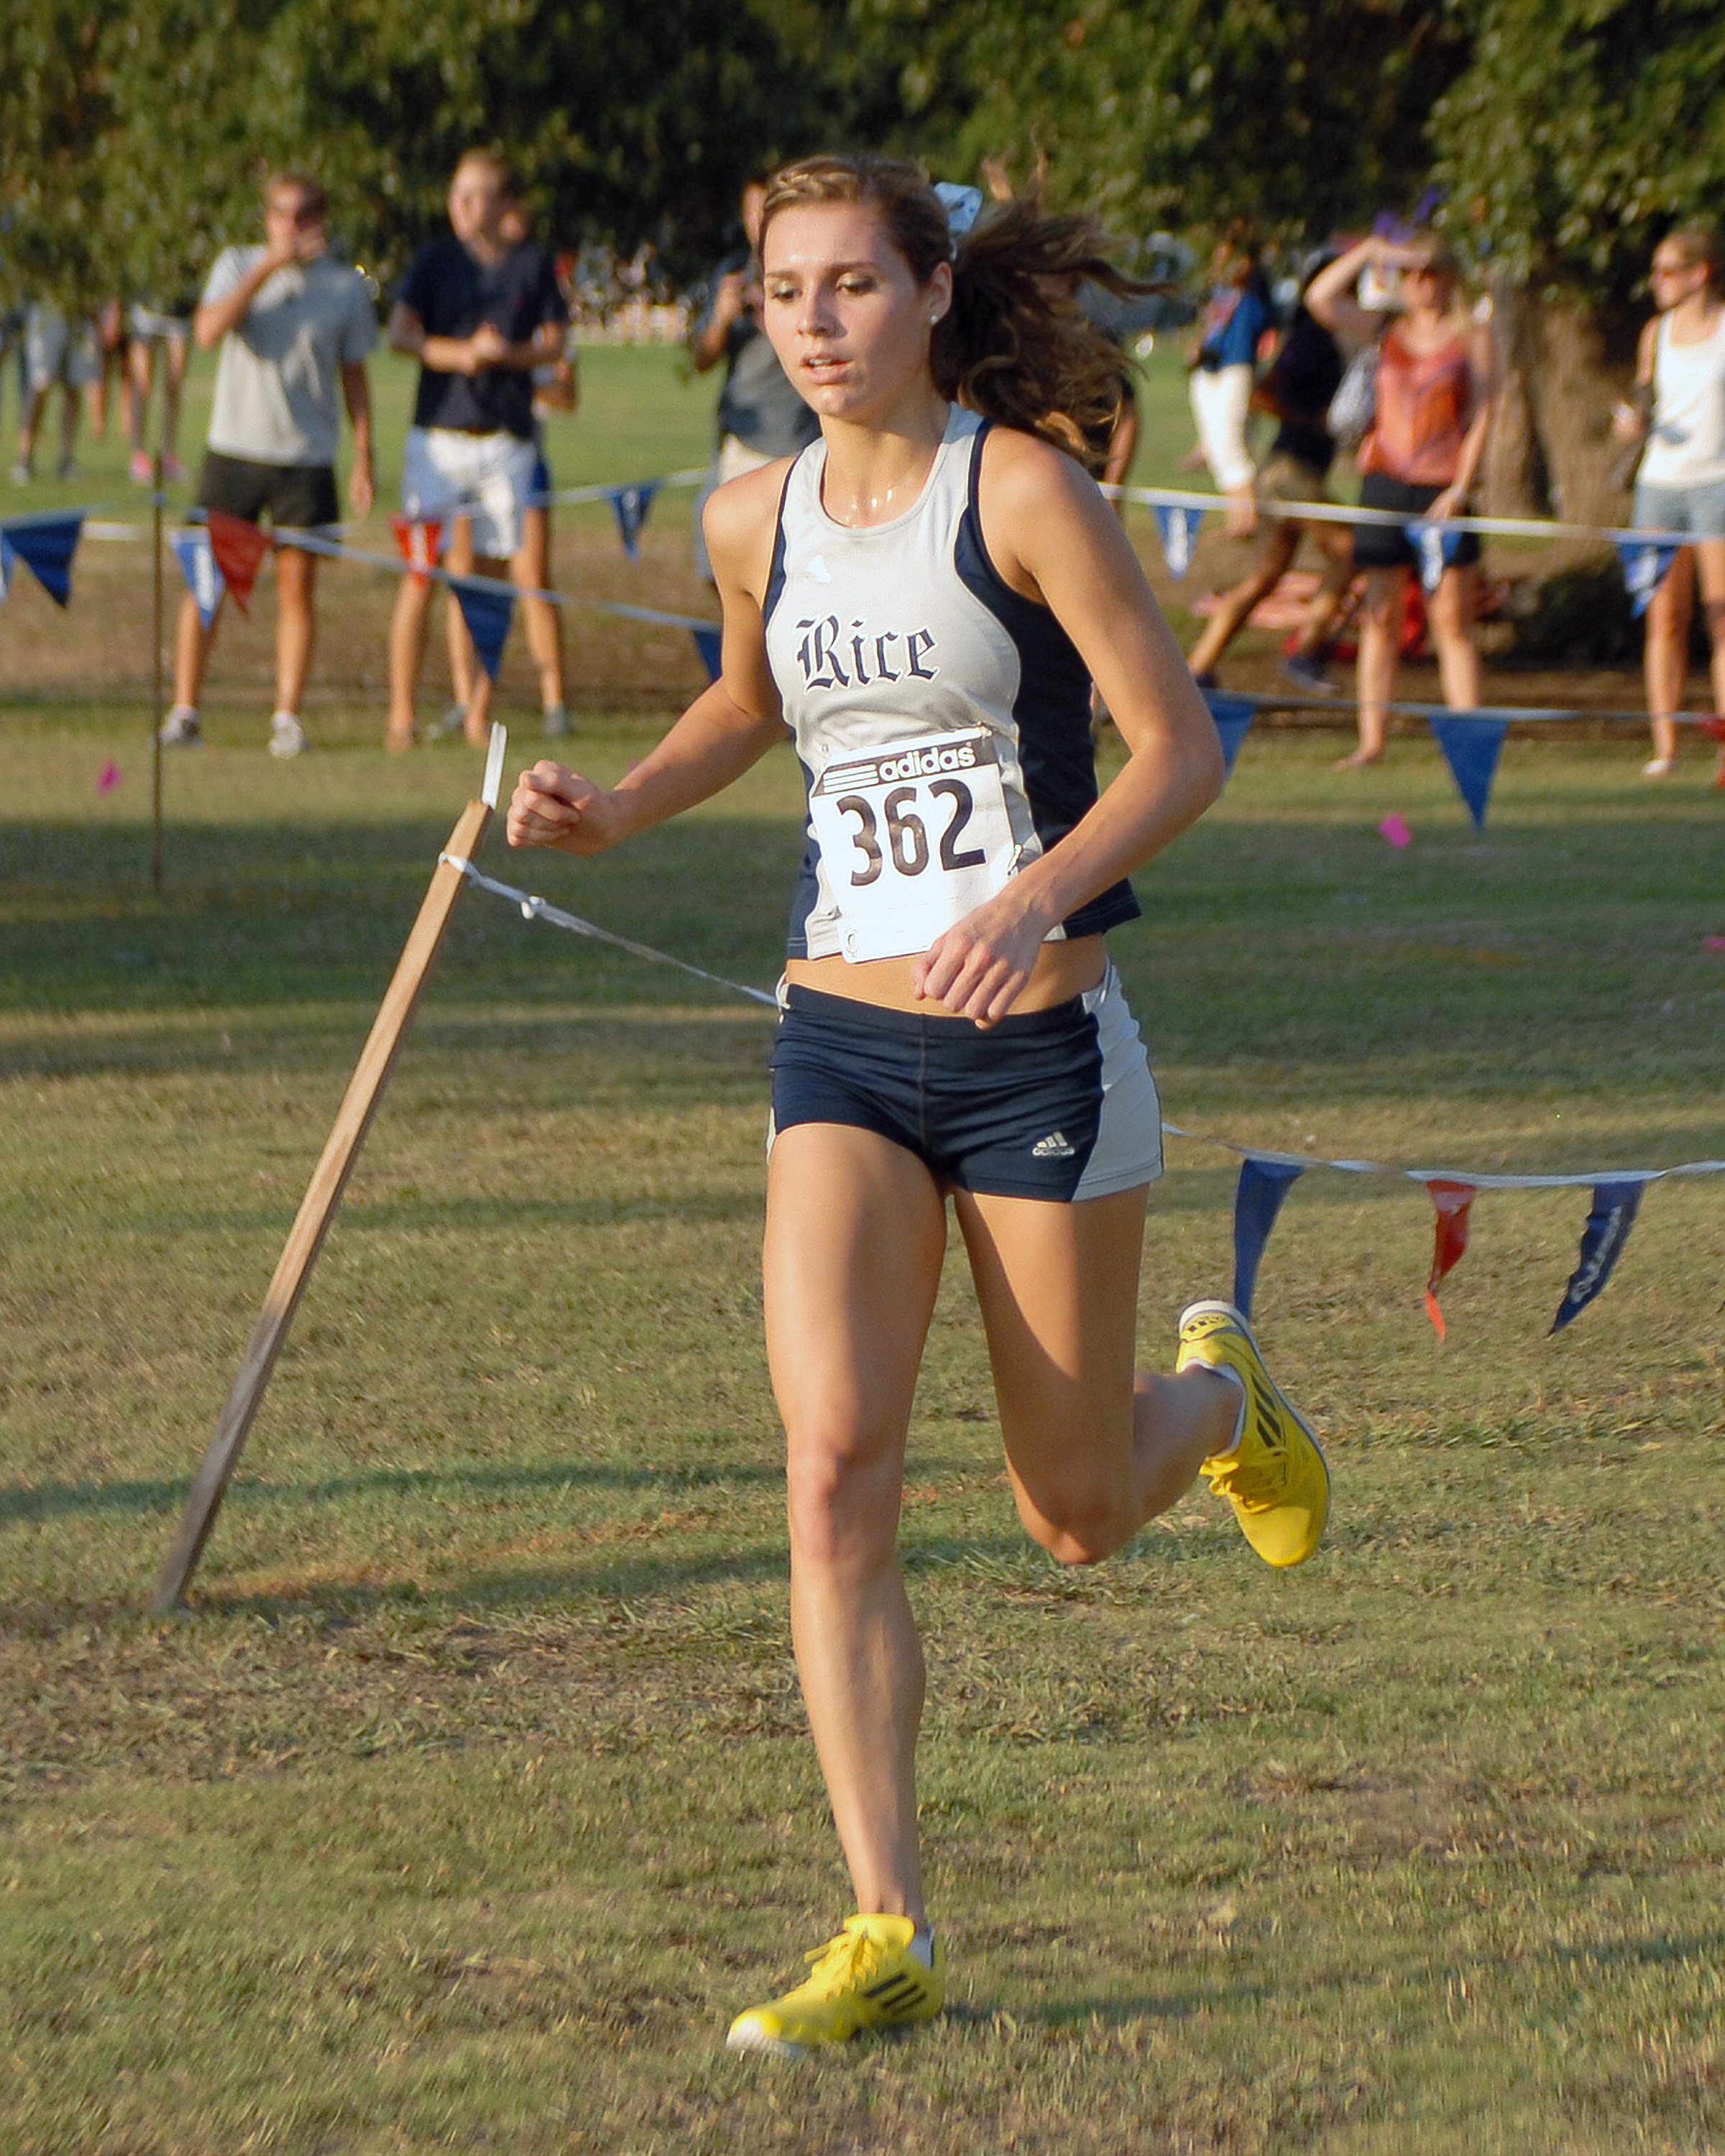 Cali Roper finished third, the first of three Rice freshmen in the top 15